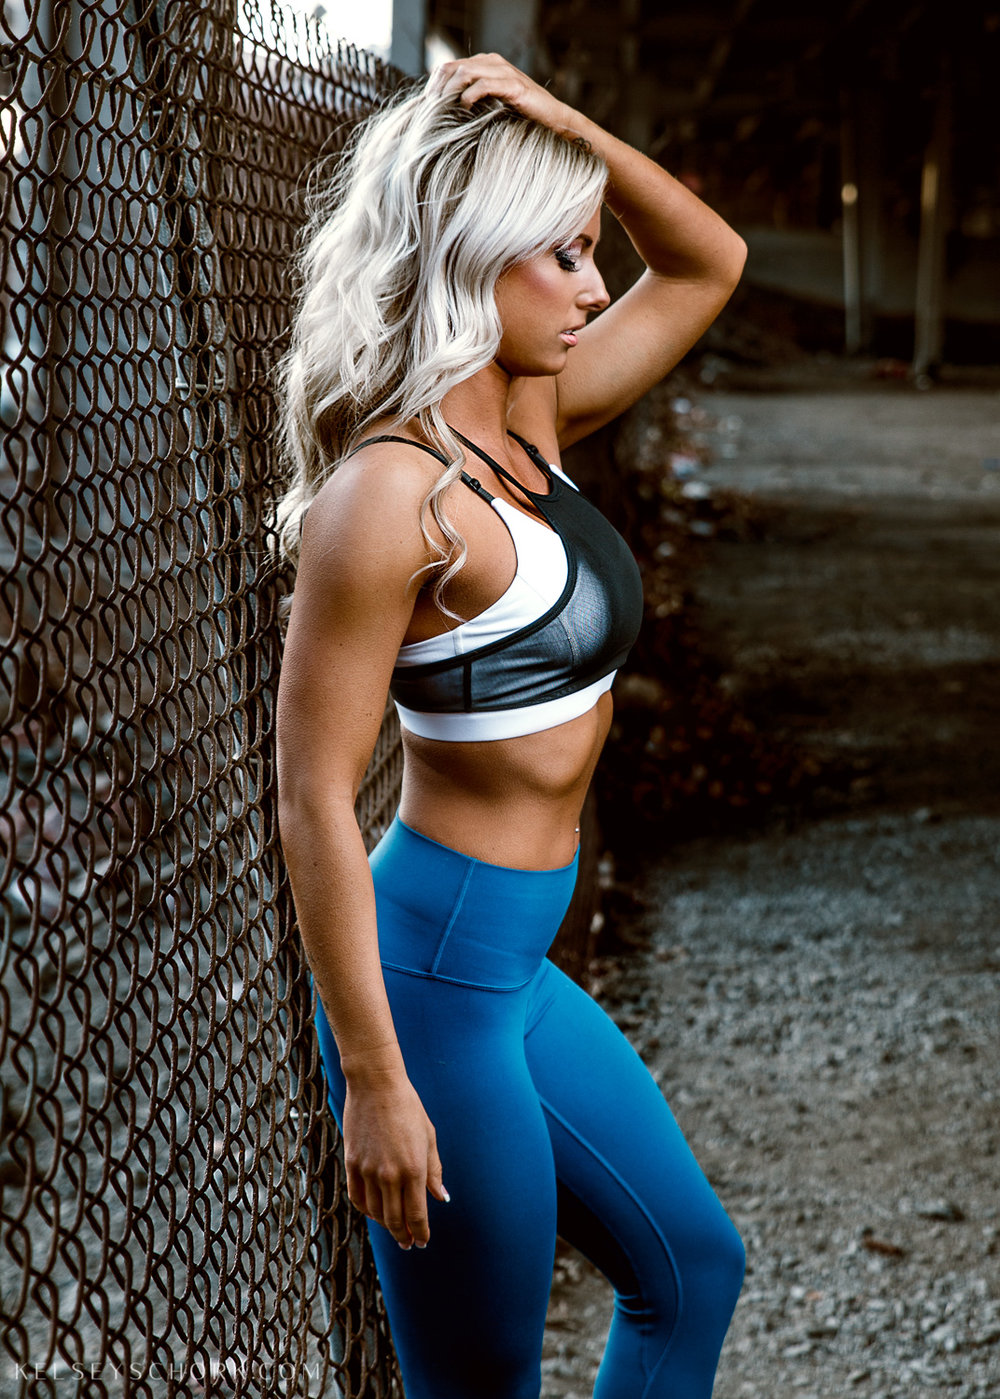 Erin_fitness_photoshoot-14.jpg